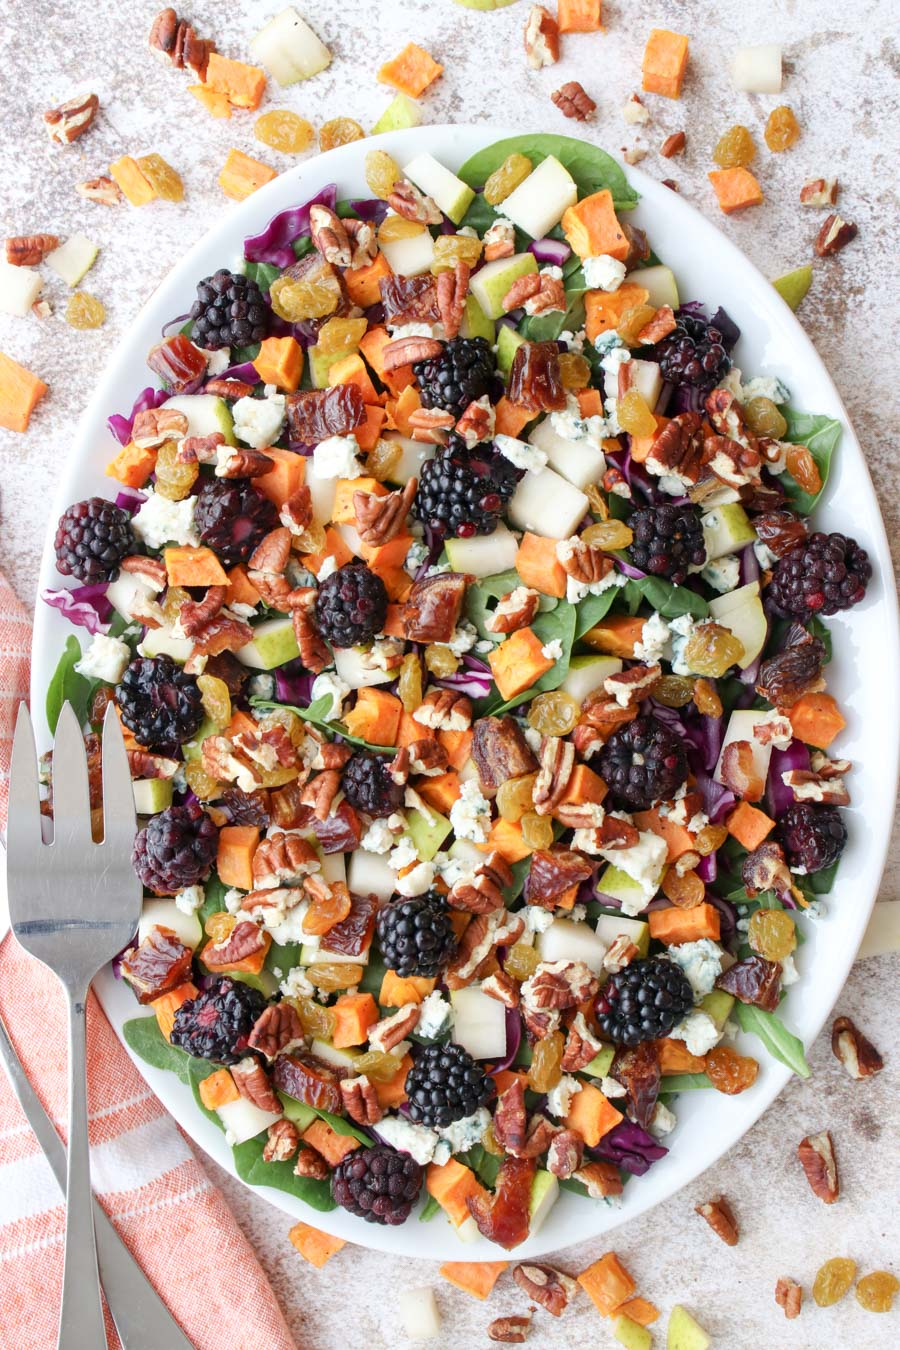 Beautiful platter of colorful fall harvest salad